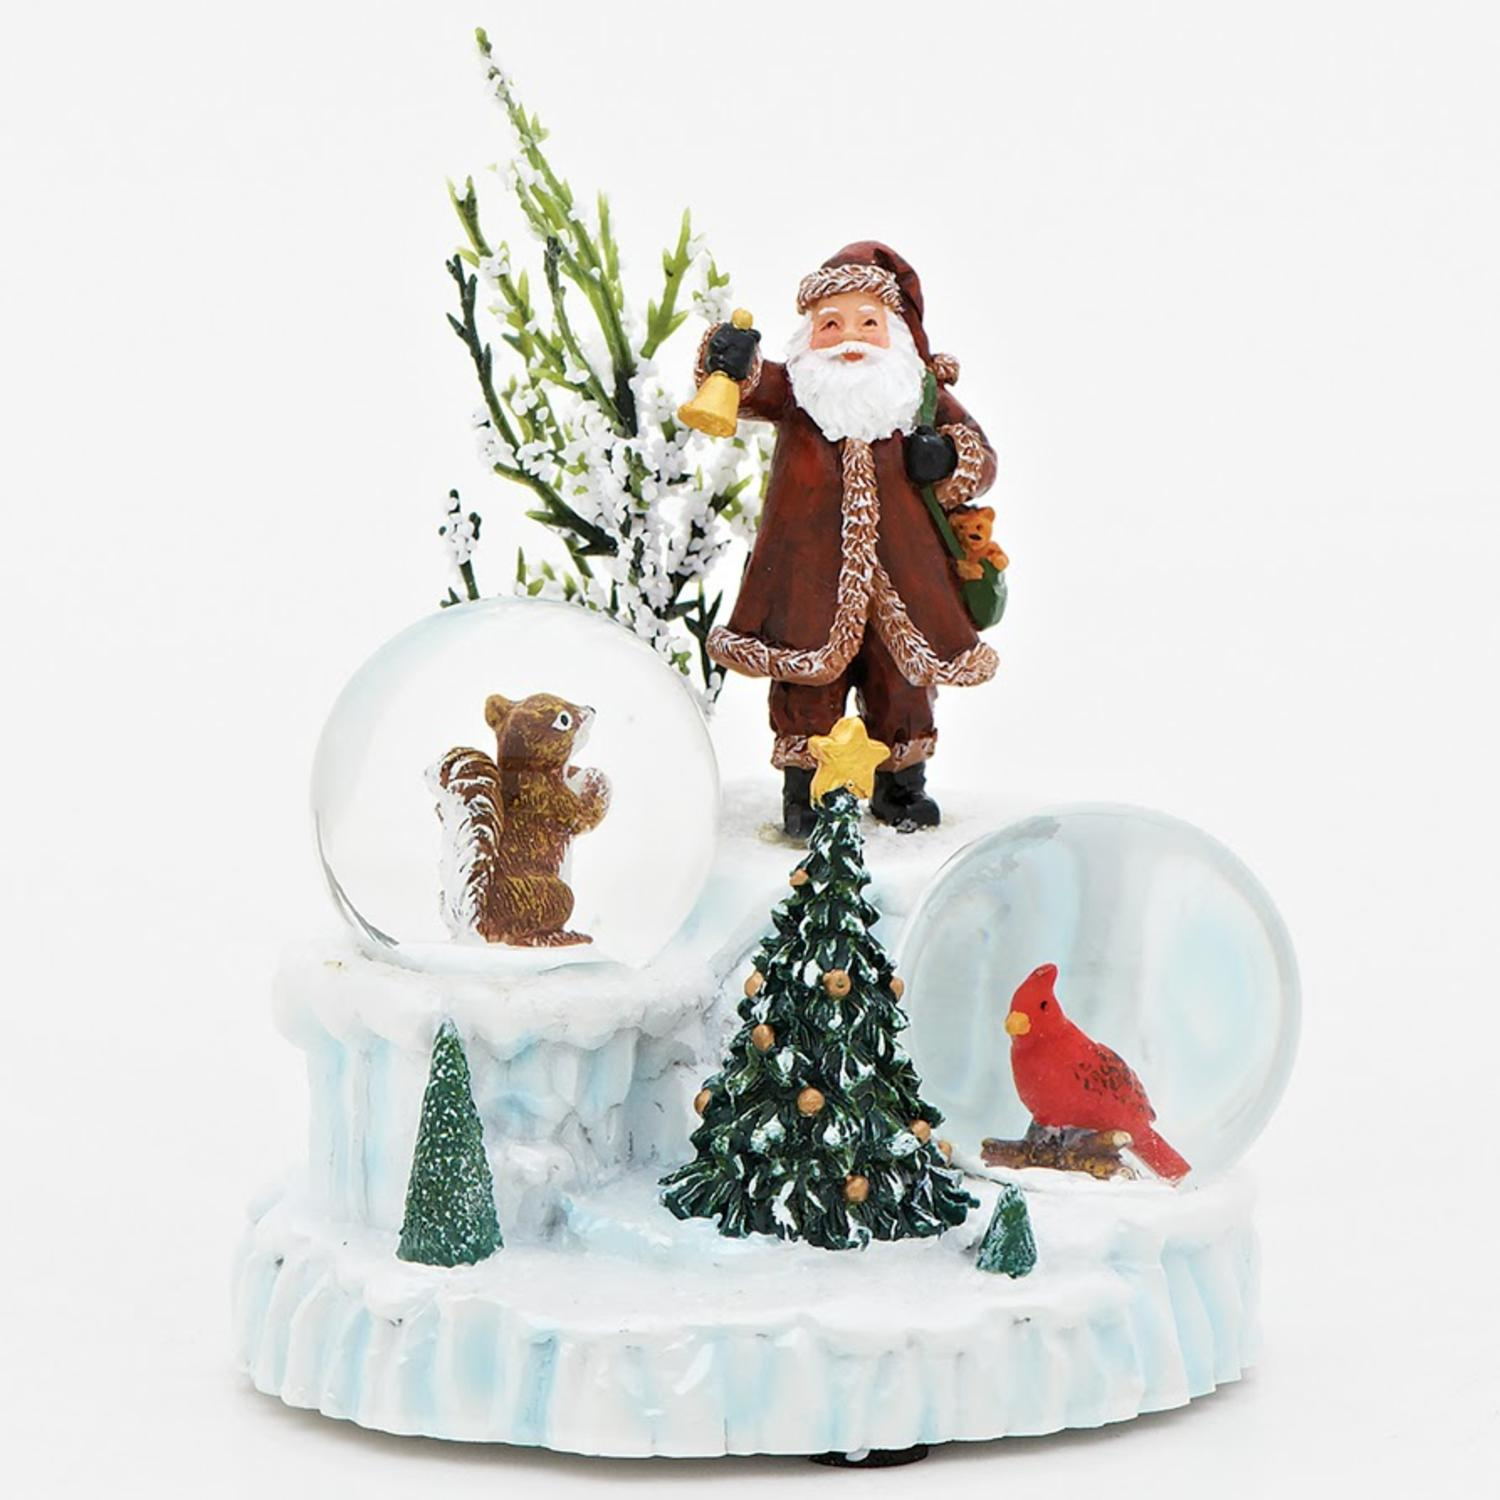 """4.75"""" Santa Claus with Cardinal and Squirrel Snow Globes Christmas Decoration - image 2 of 2"""